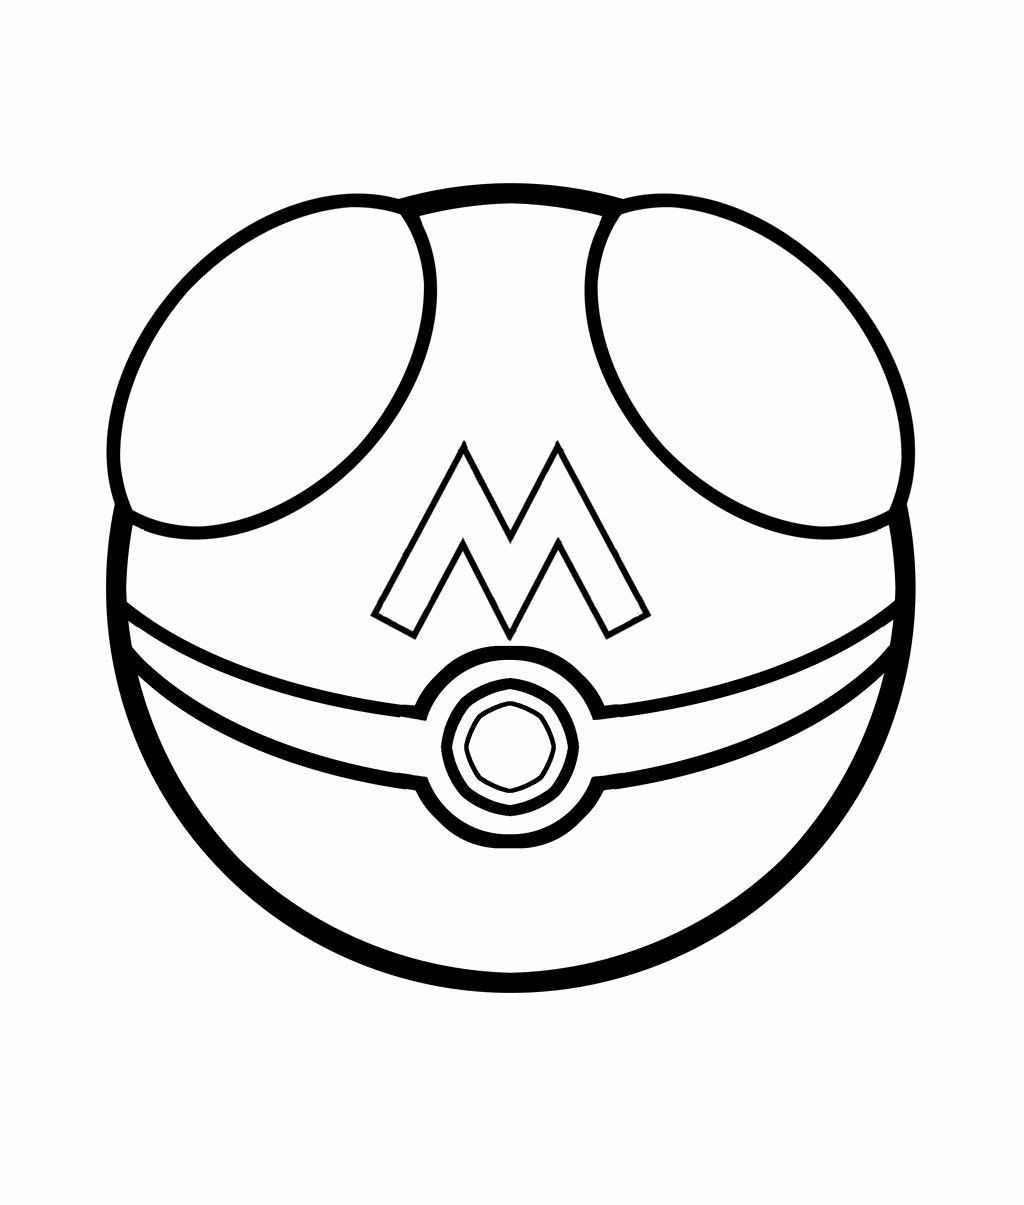 32 Pokemon Ball Coloring Page In 2020 Pokemon Coloring Pages